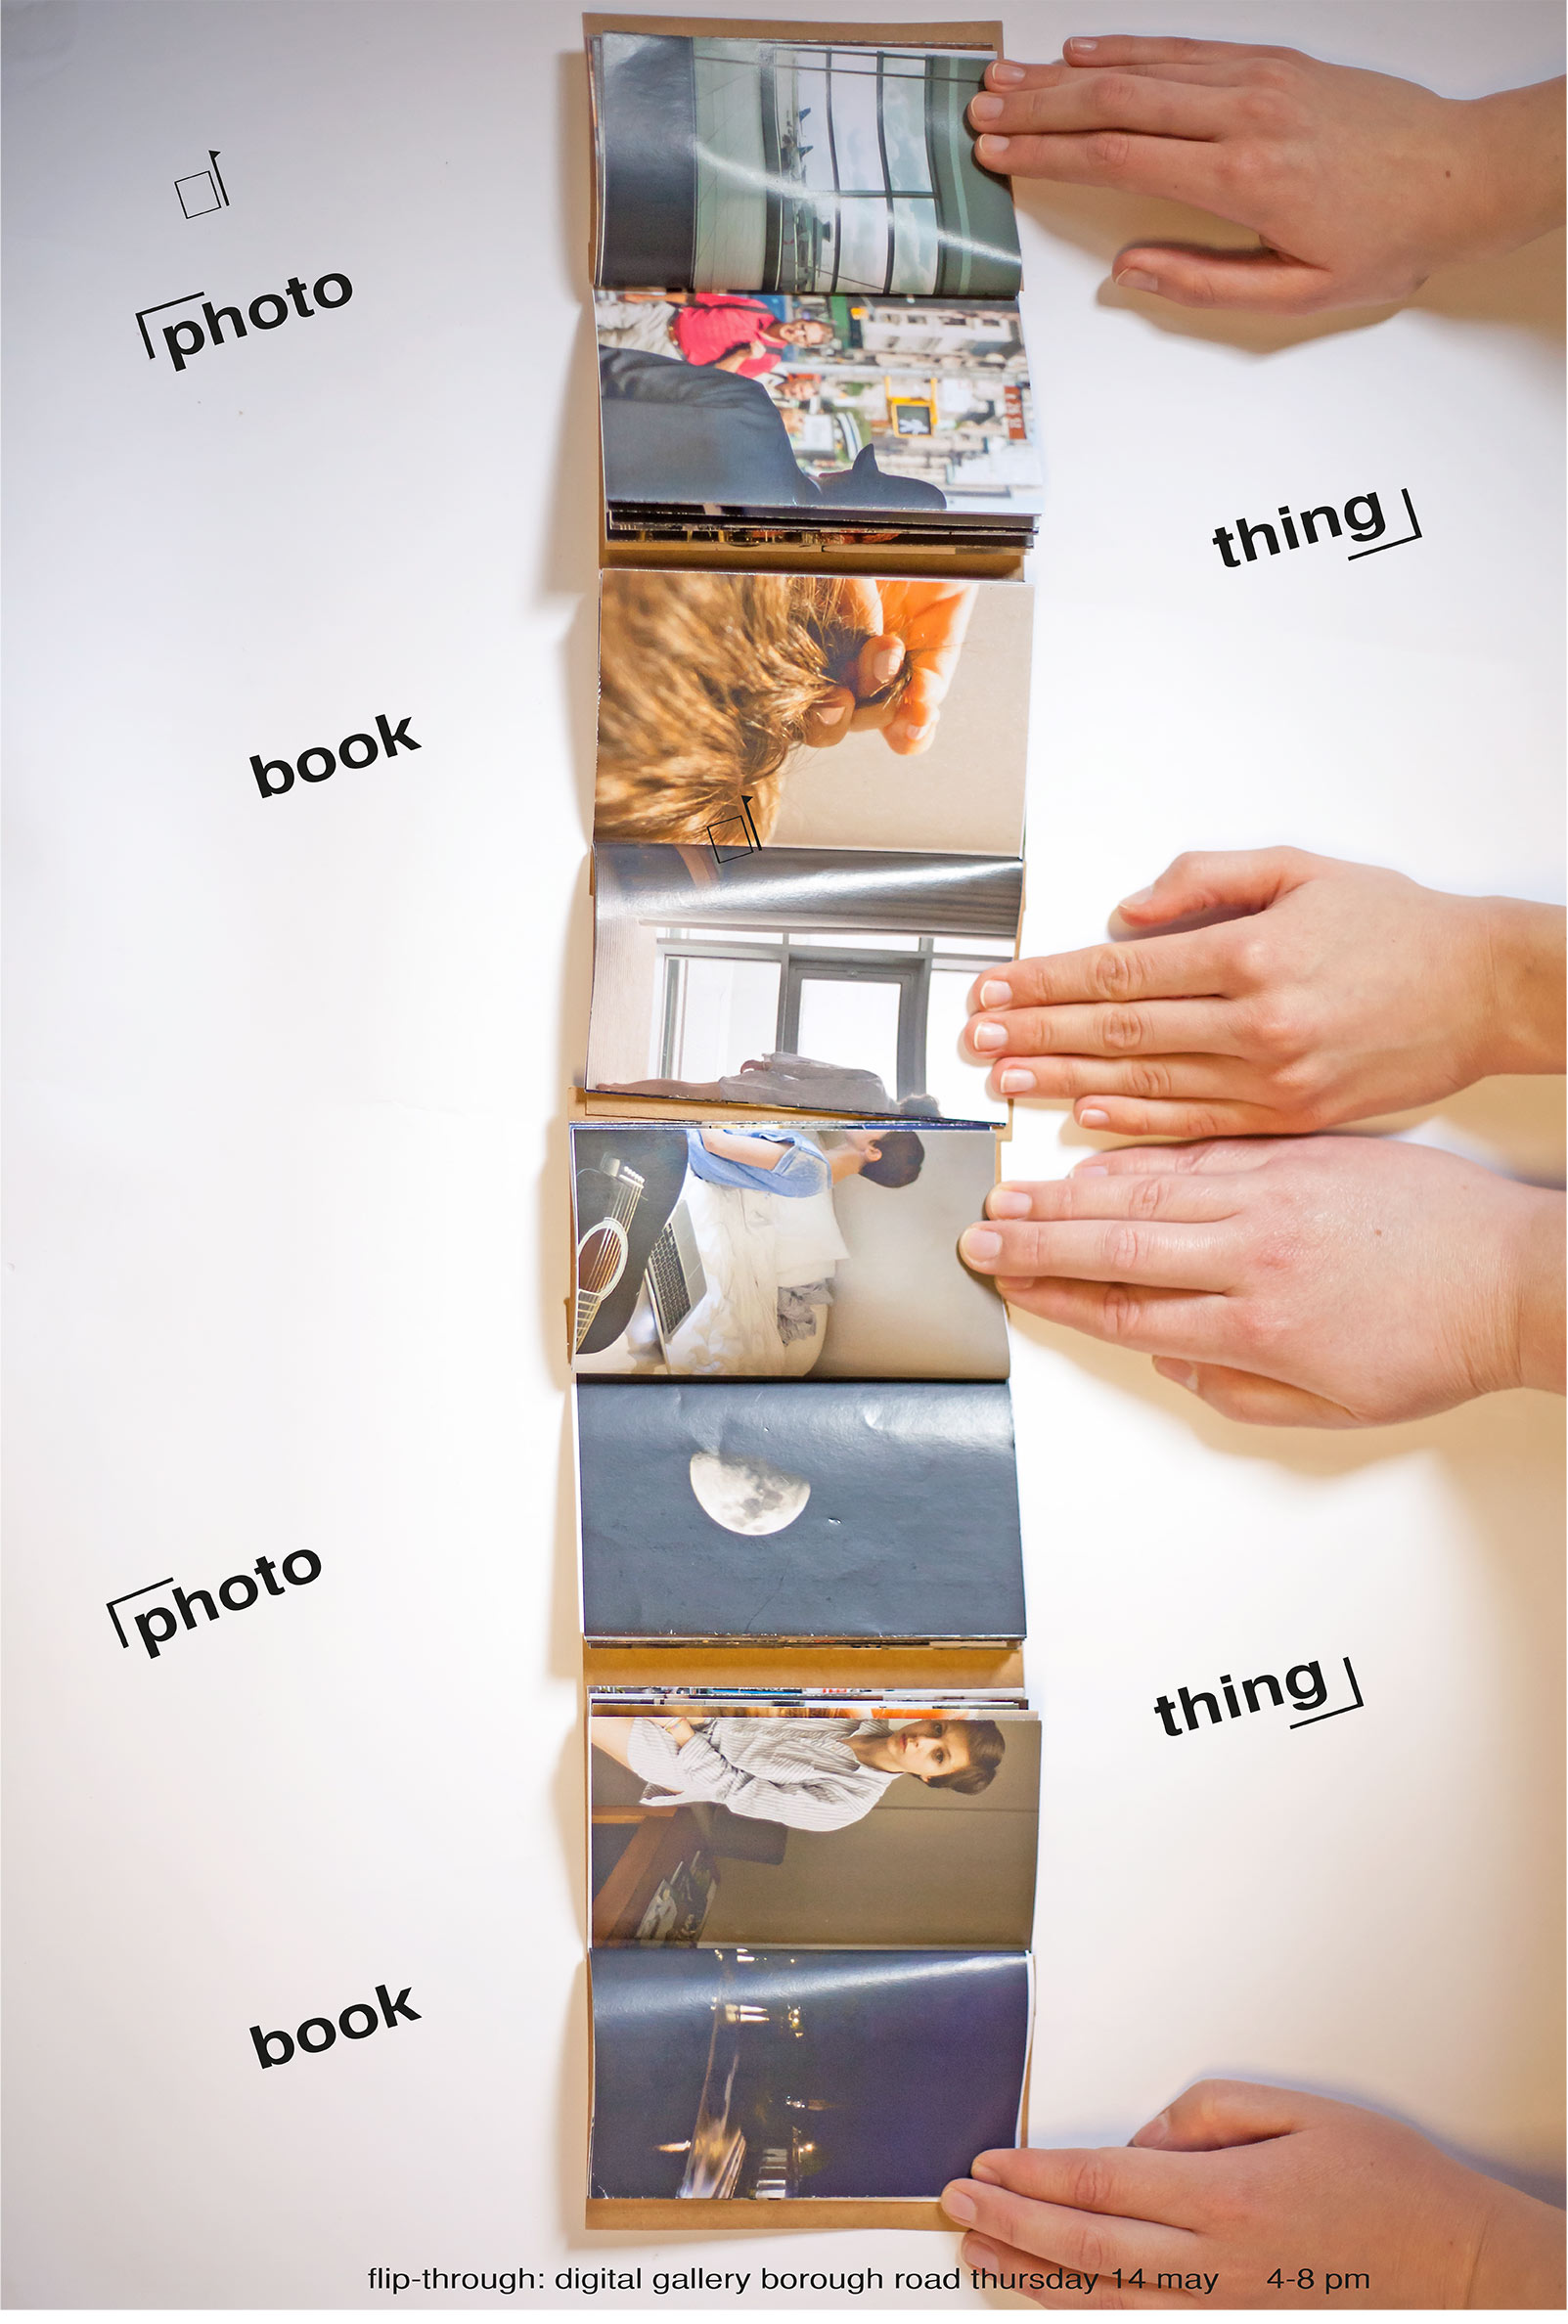 PHOTO-BOOK-THING-7